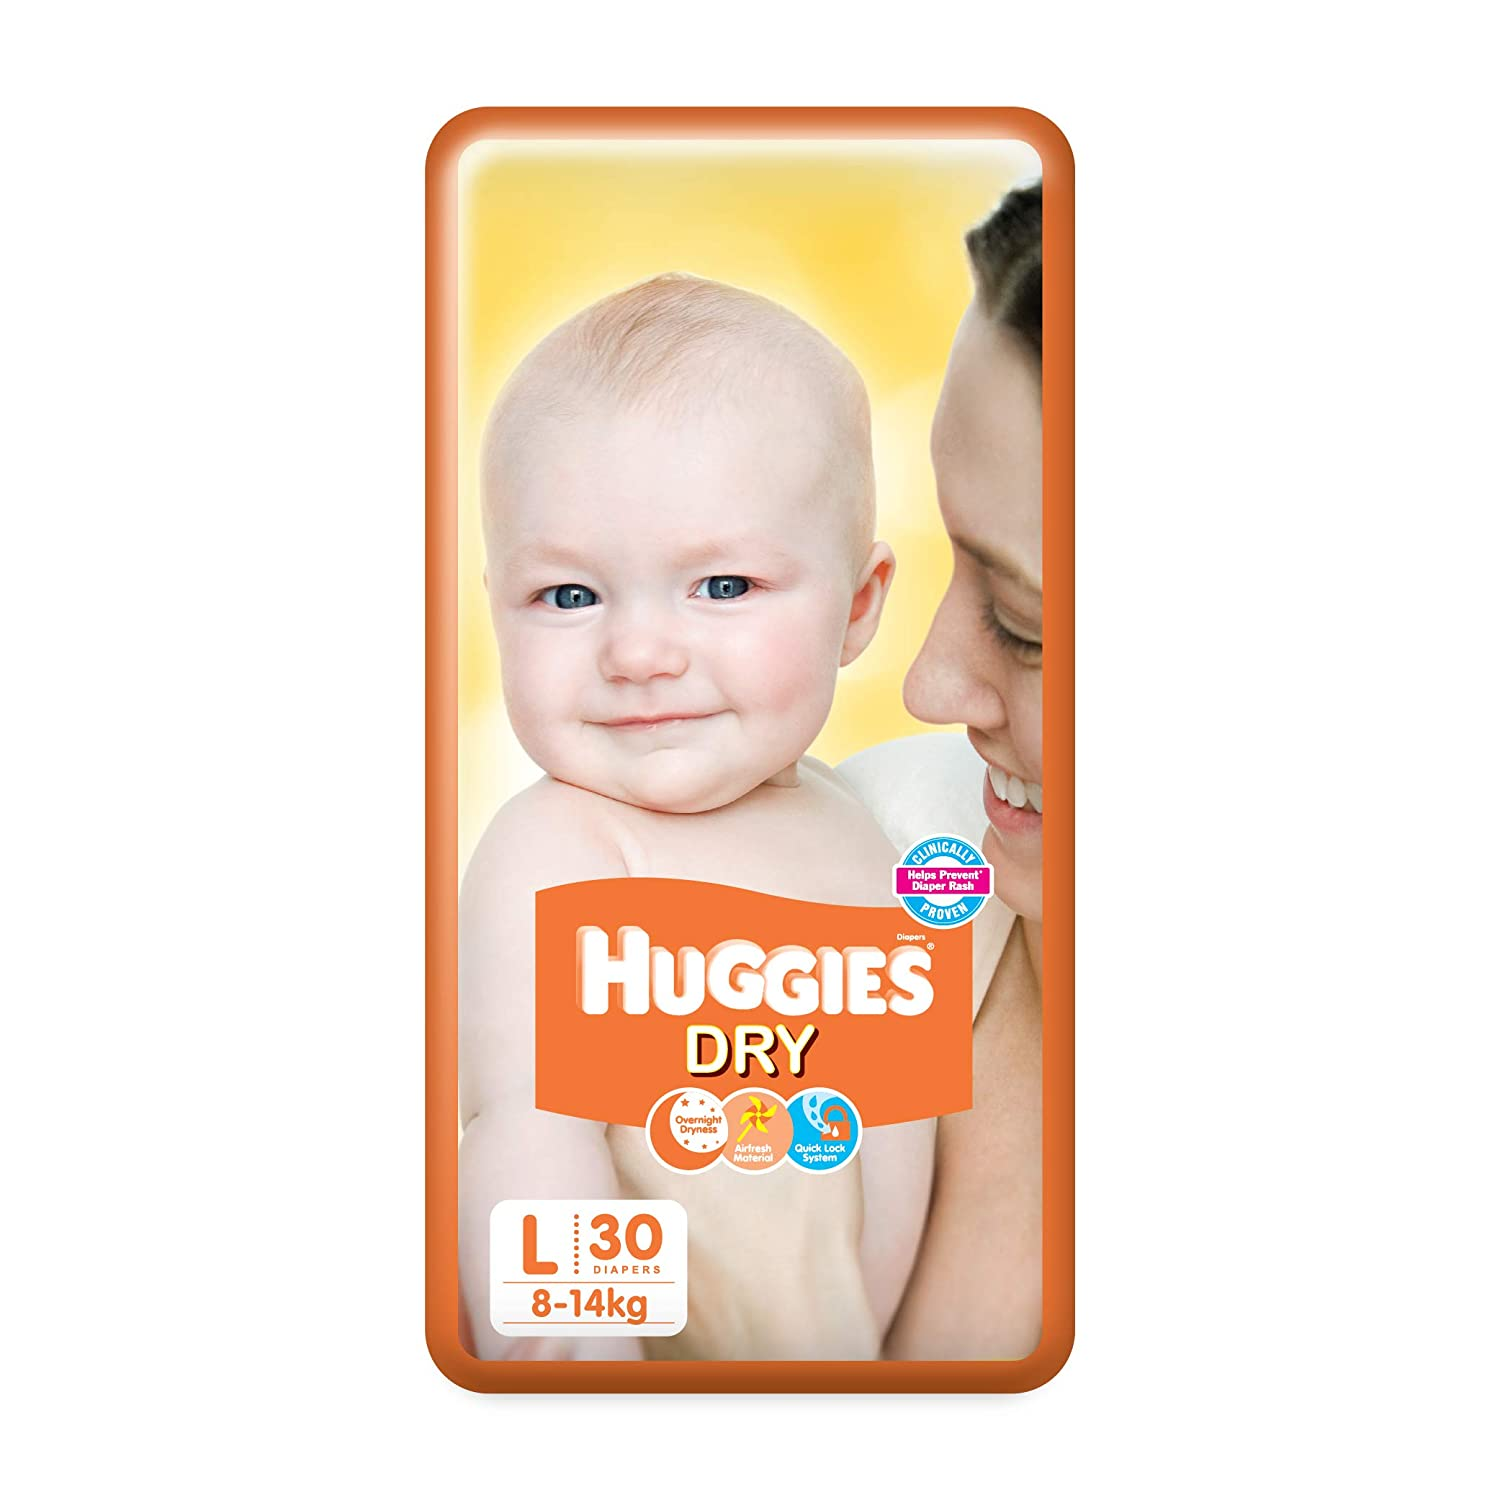 Huggies New Dry Diapers, Large (Pack of 30)